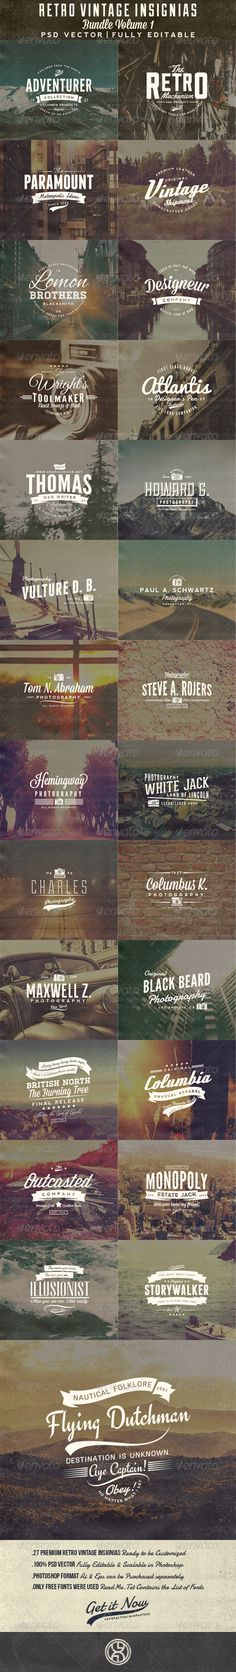 27 Retro Vintage Insignias Bundle Volume 1 - Badges & Stickers Web Elements Scripture font for g&g wide tracking on a sans-serif caps t Typography Letters, Typography Logo, Graphic Design Typography, Hand Lettering, Vintage Typography, Vintage Logos, Retro Logos, Web Design, Logo Design